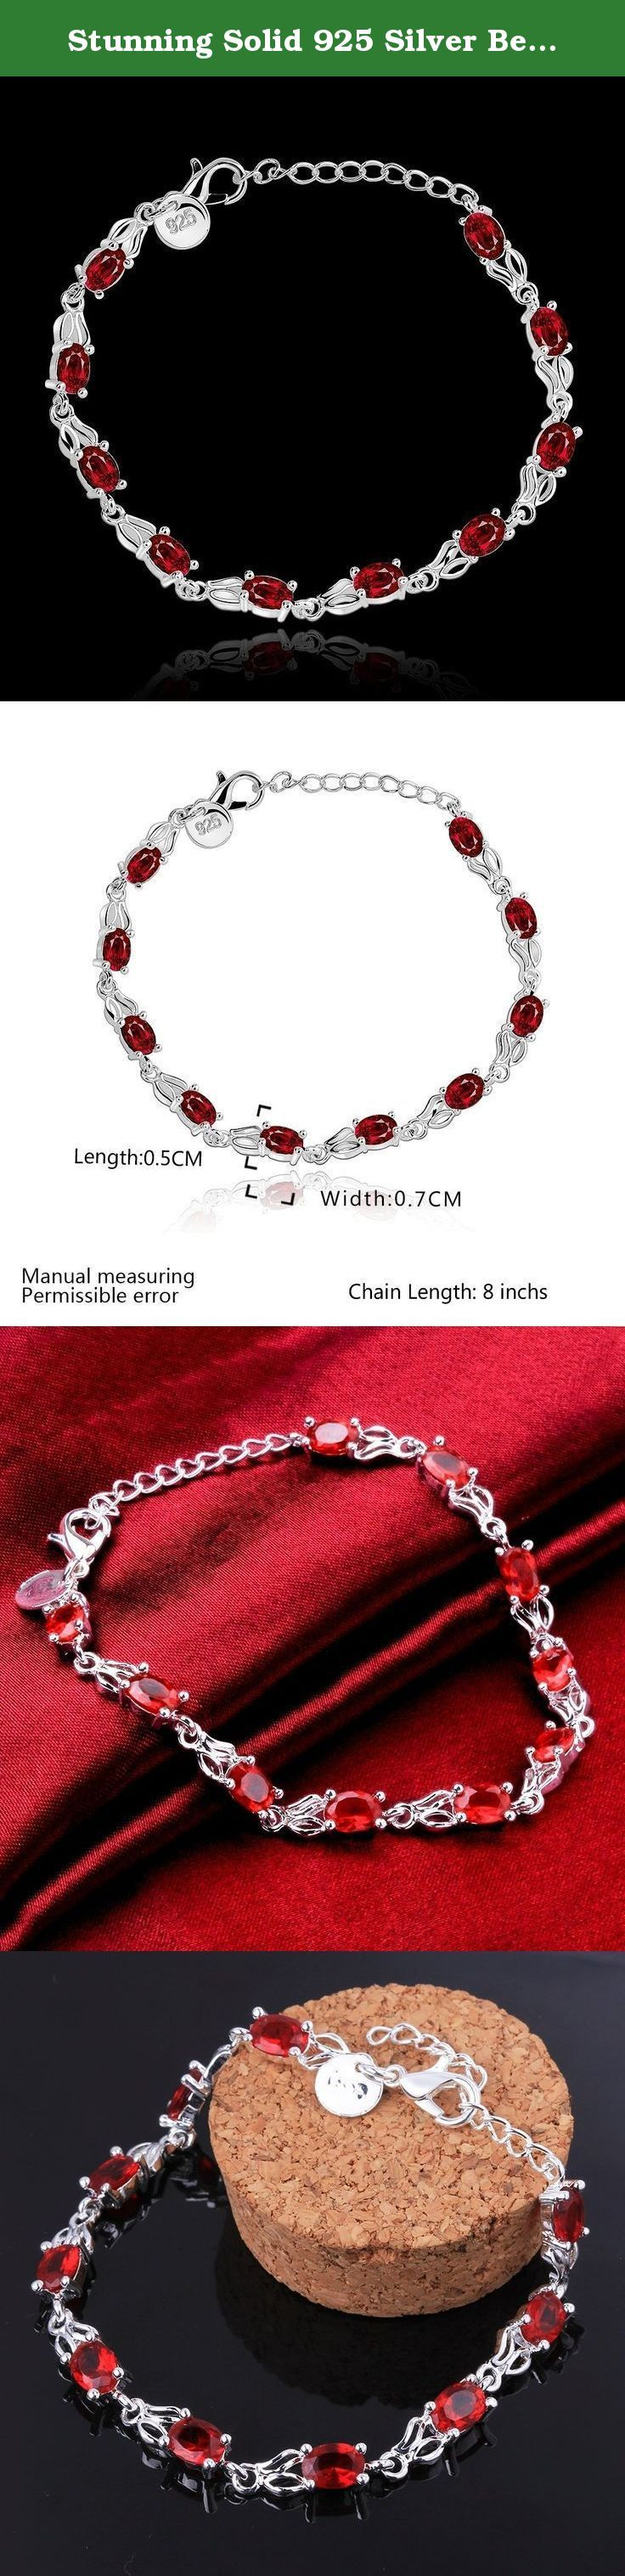 Stunning Solid 925 Silver Beautiful Red Diamond Fashion Bracelet Chain. This bracelet has certain subtle elegance and it is quite appropriate for office and formal wear. A wonderful gift for that special person in your life , whether it is for a birthday, Valentine's Day, An anniversary, or any other special occasion. This item comes in a Gift Bag.Will make your item or gift more perfect. Jewelry maintenance and Precautions 1.First.'s Best maintenance method is to wear every day, due to…